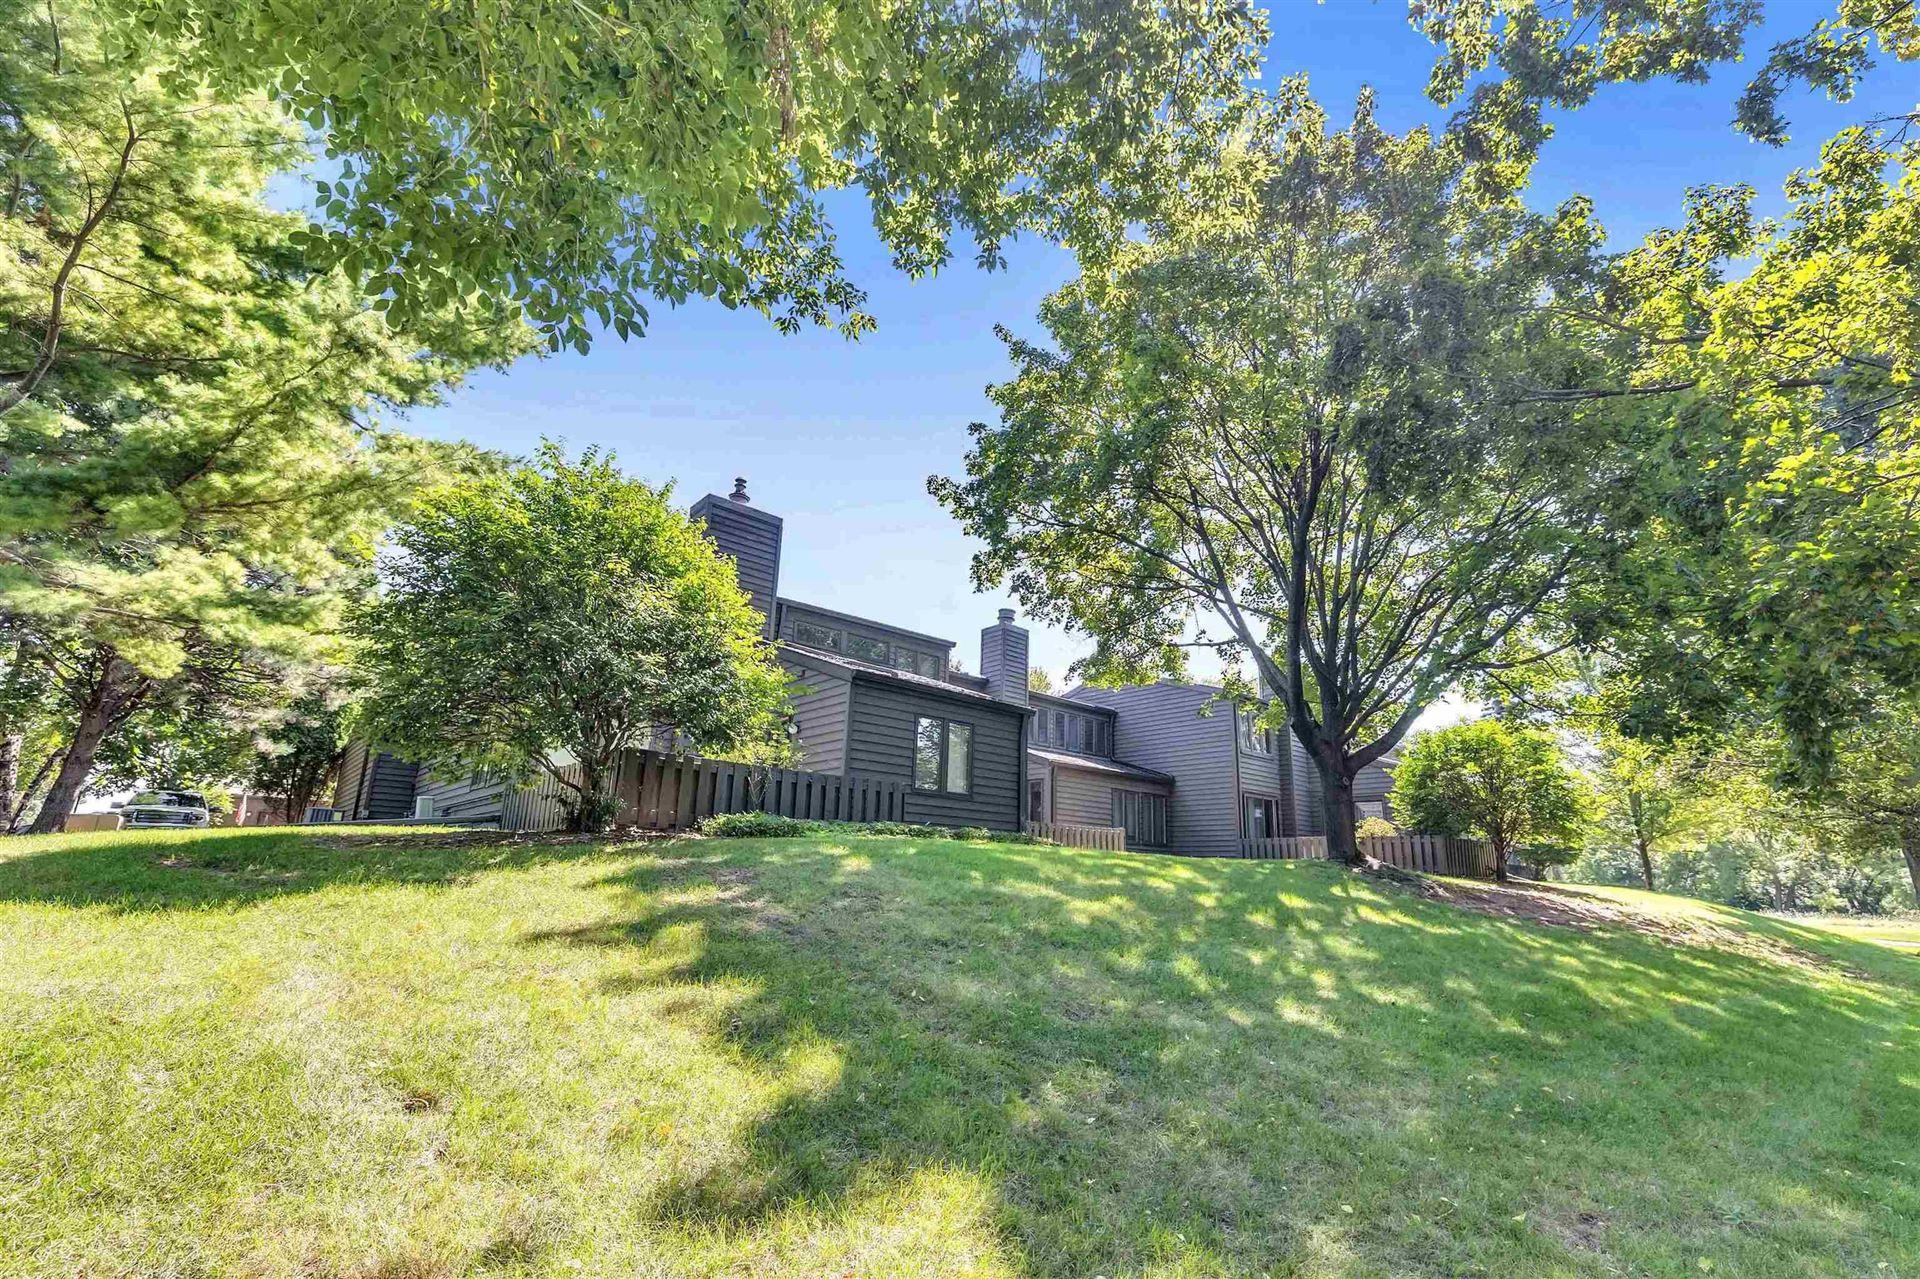 61 WEBSTER HEIGHTS Drive, Green Bay, WI 54301 - MLS#: 50247194